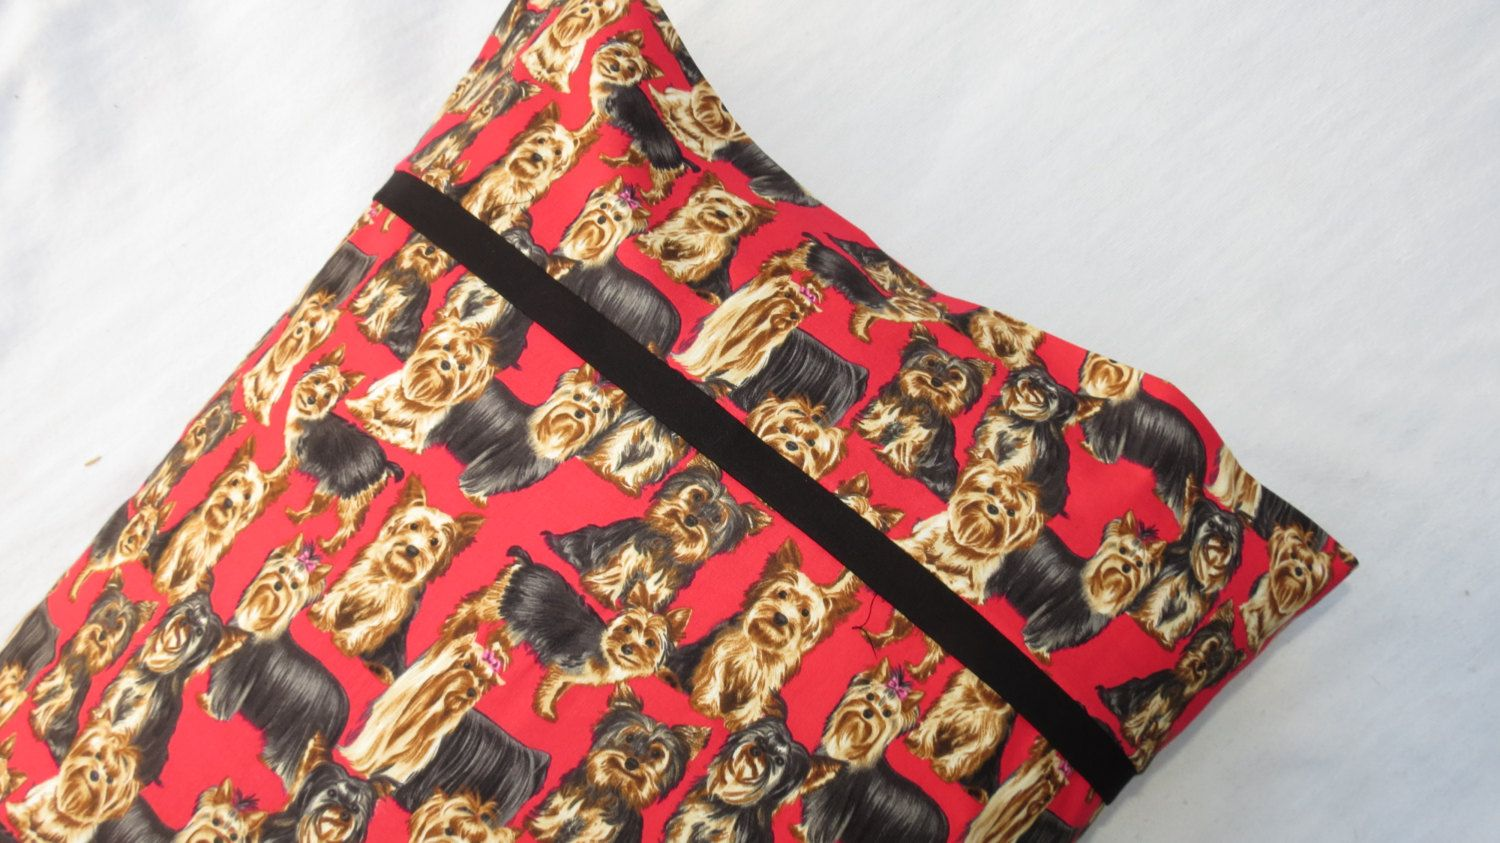 Yorkie hero dachshund dogs pillow cases by mzgeezdesigns on etsy